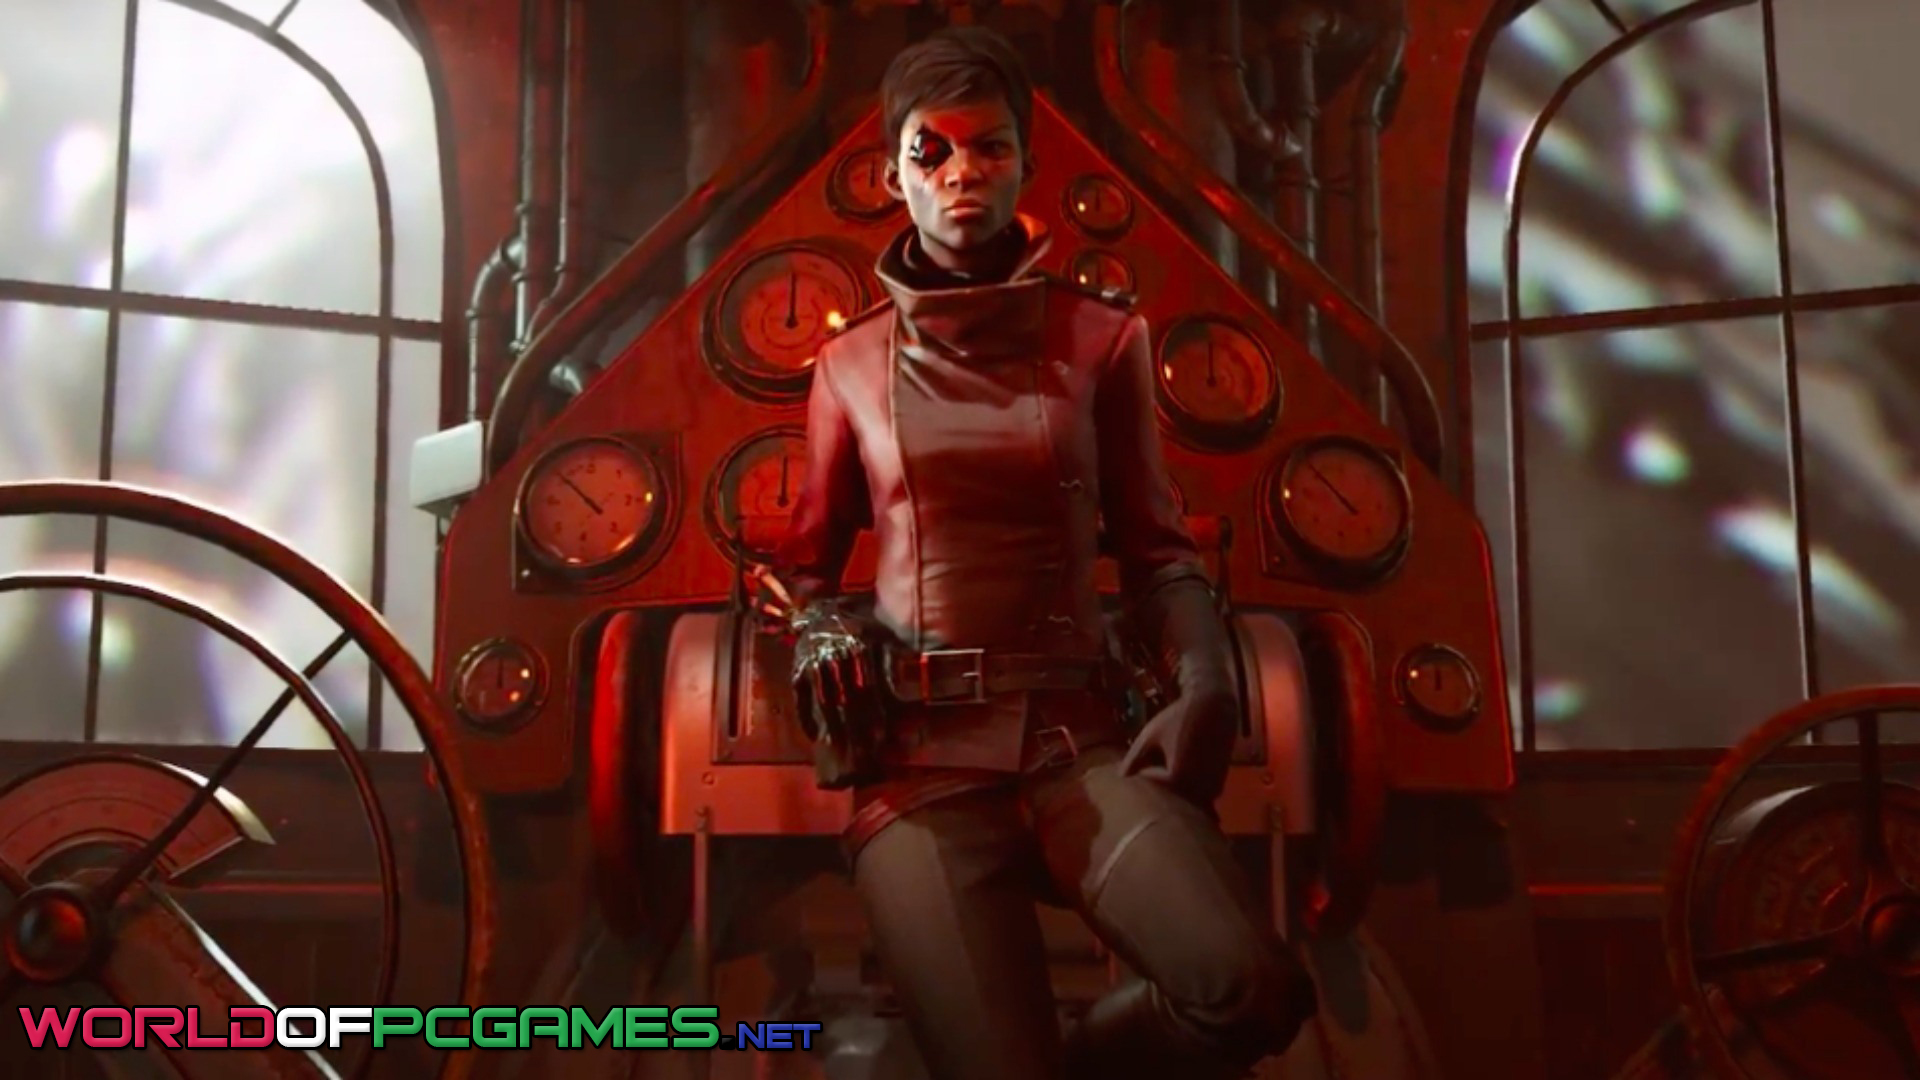 Dishonored Death Of The Outsider Free Download PC Game By Worldofpcgames.net